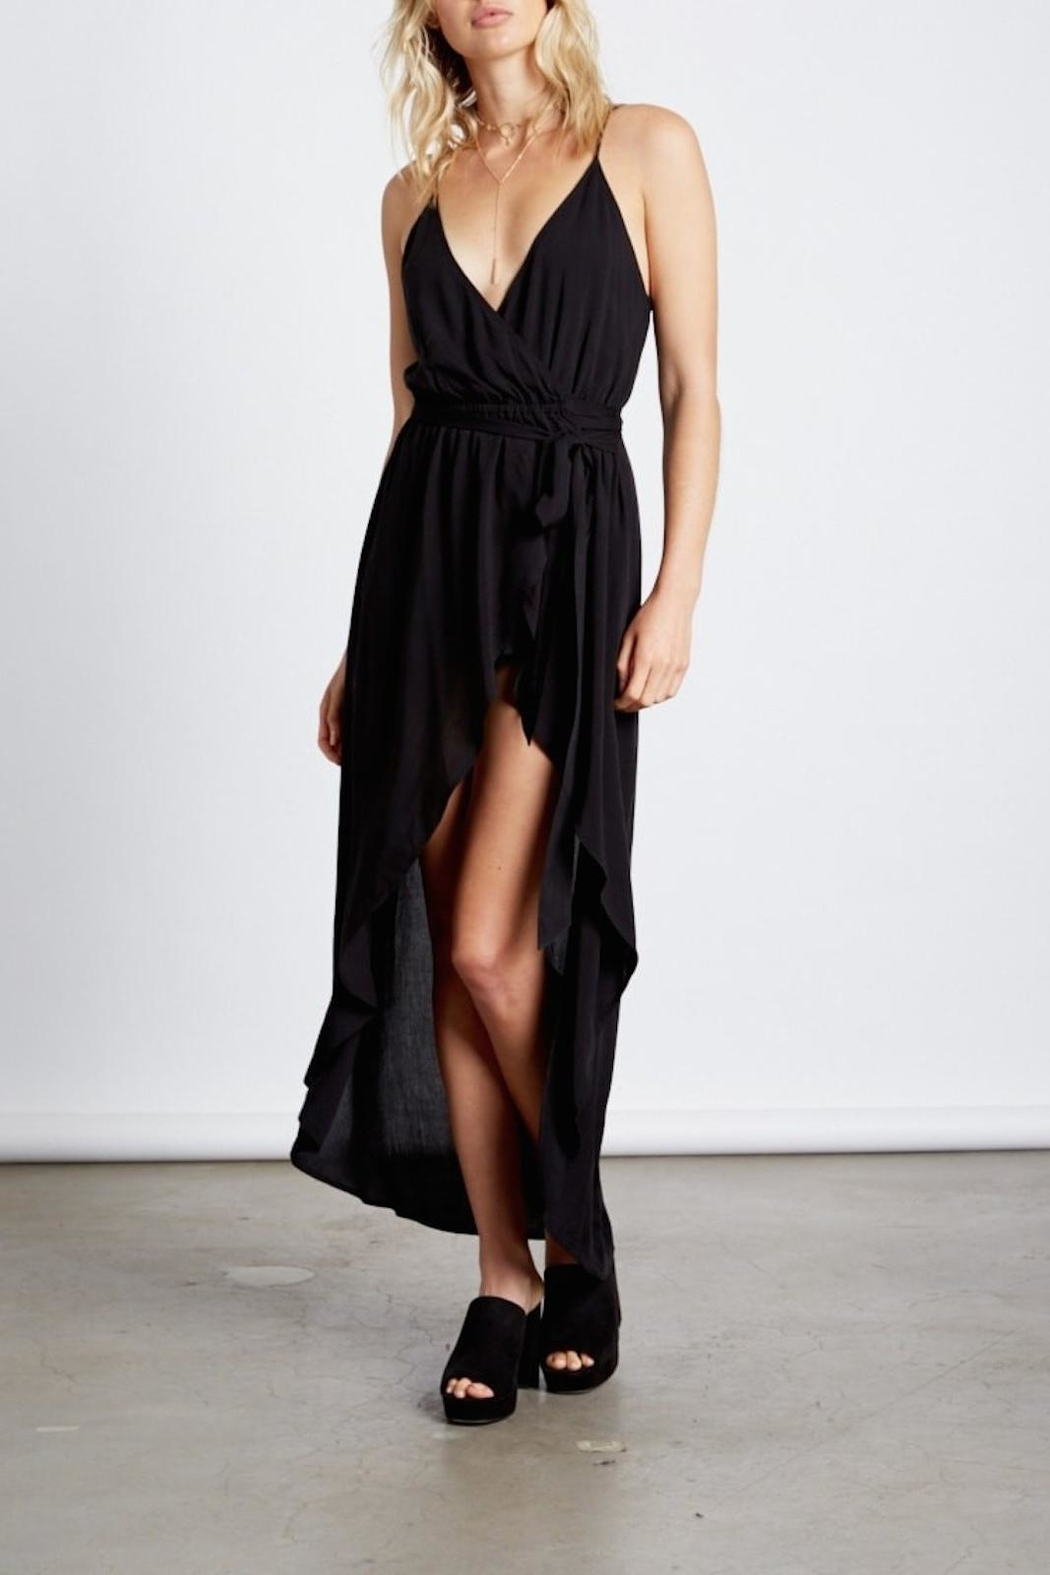 Cotton Candy Black Wrap Maxi - Front Cropped Image